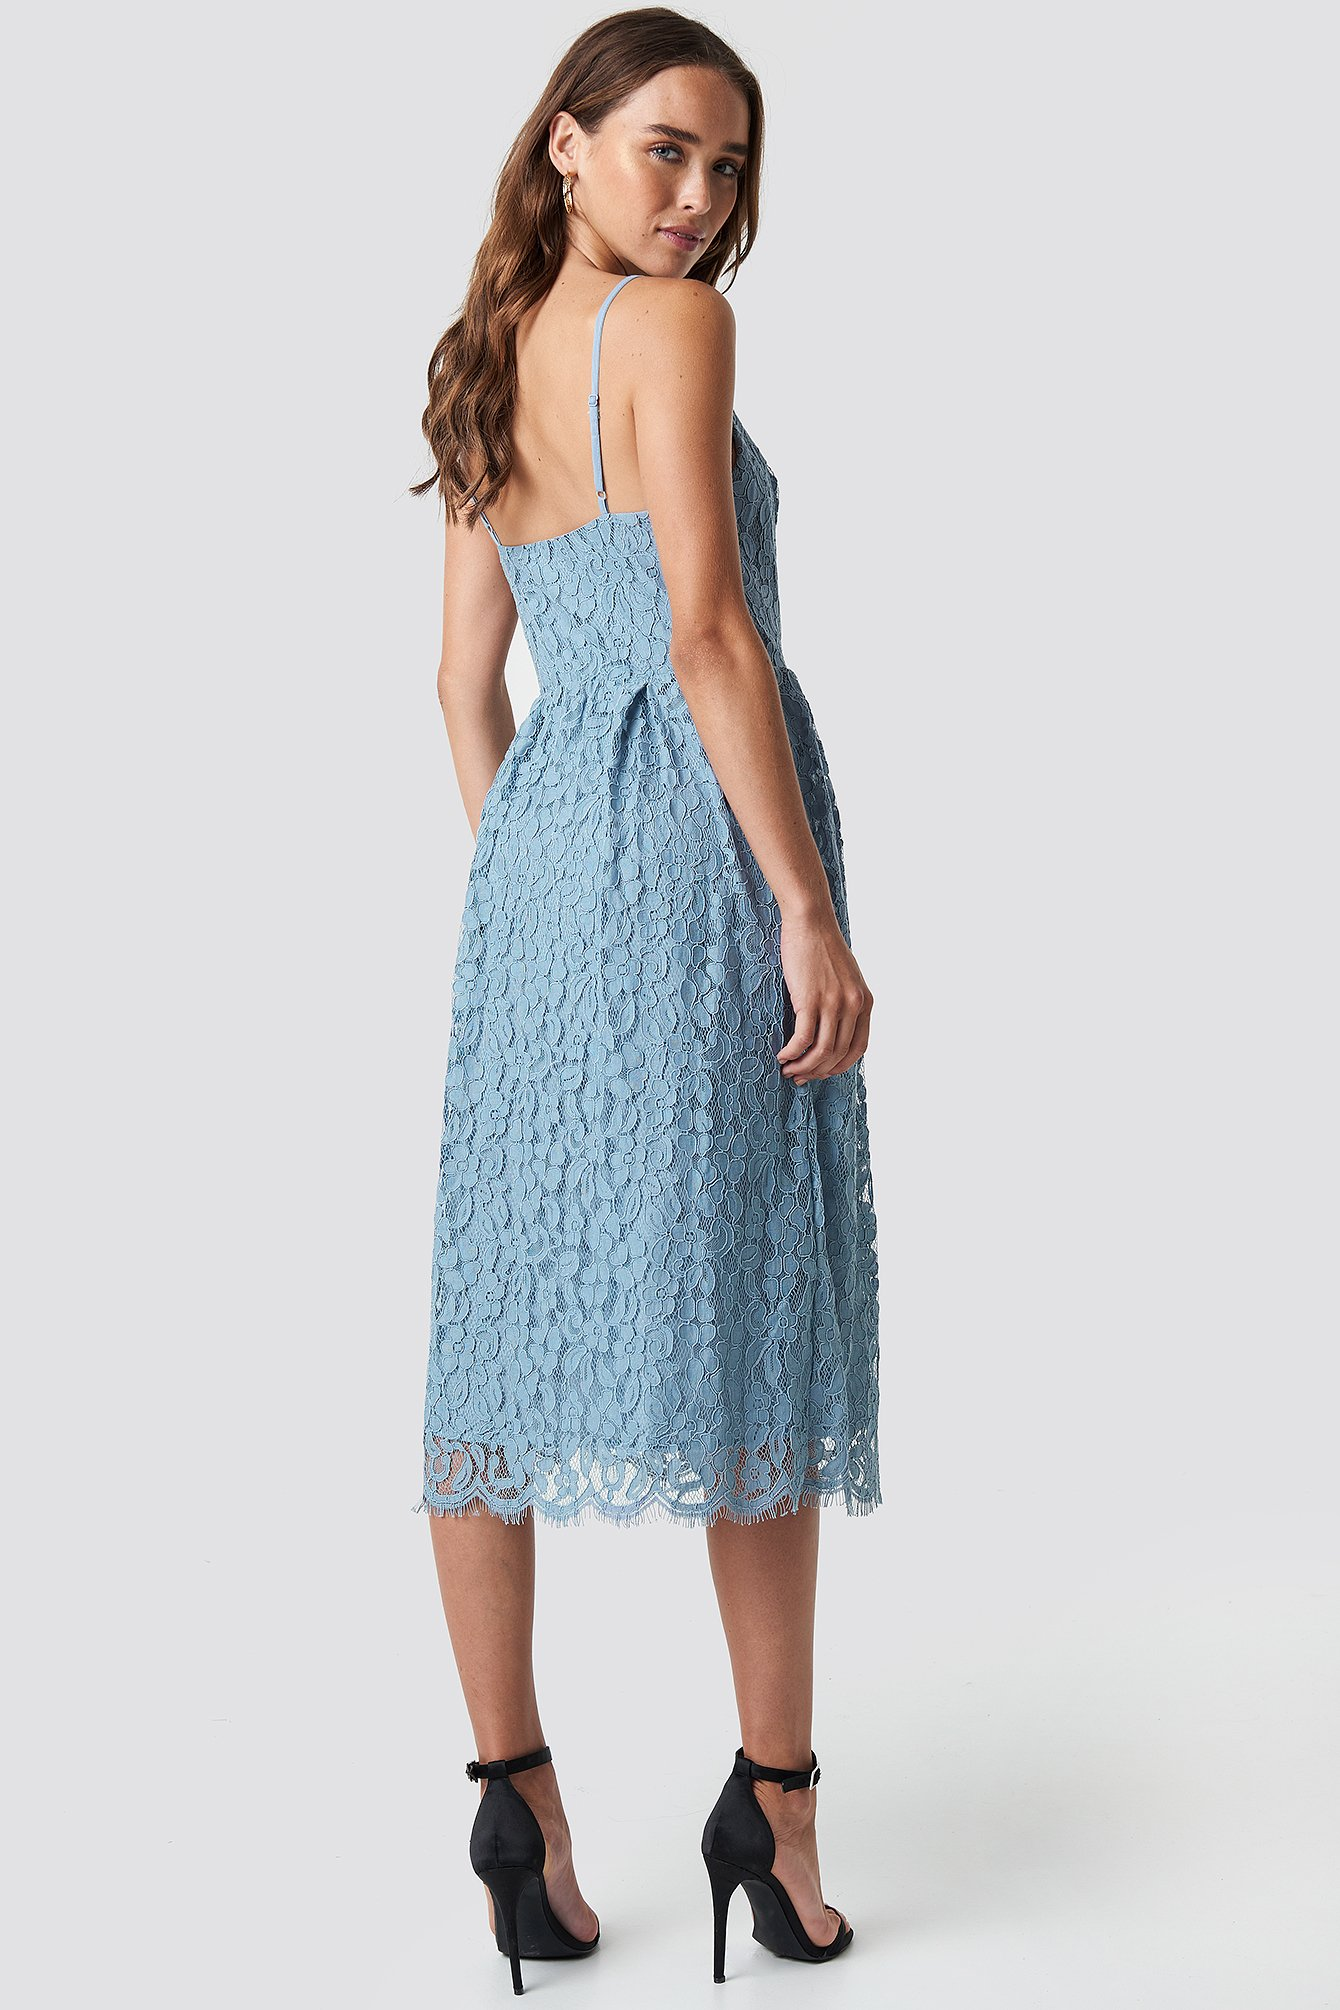 Scalloped Edge Lace Dress NA-KD.COM